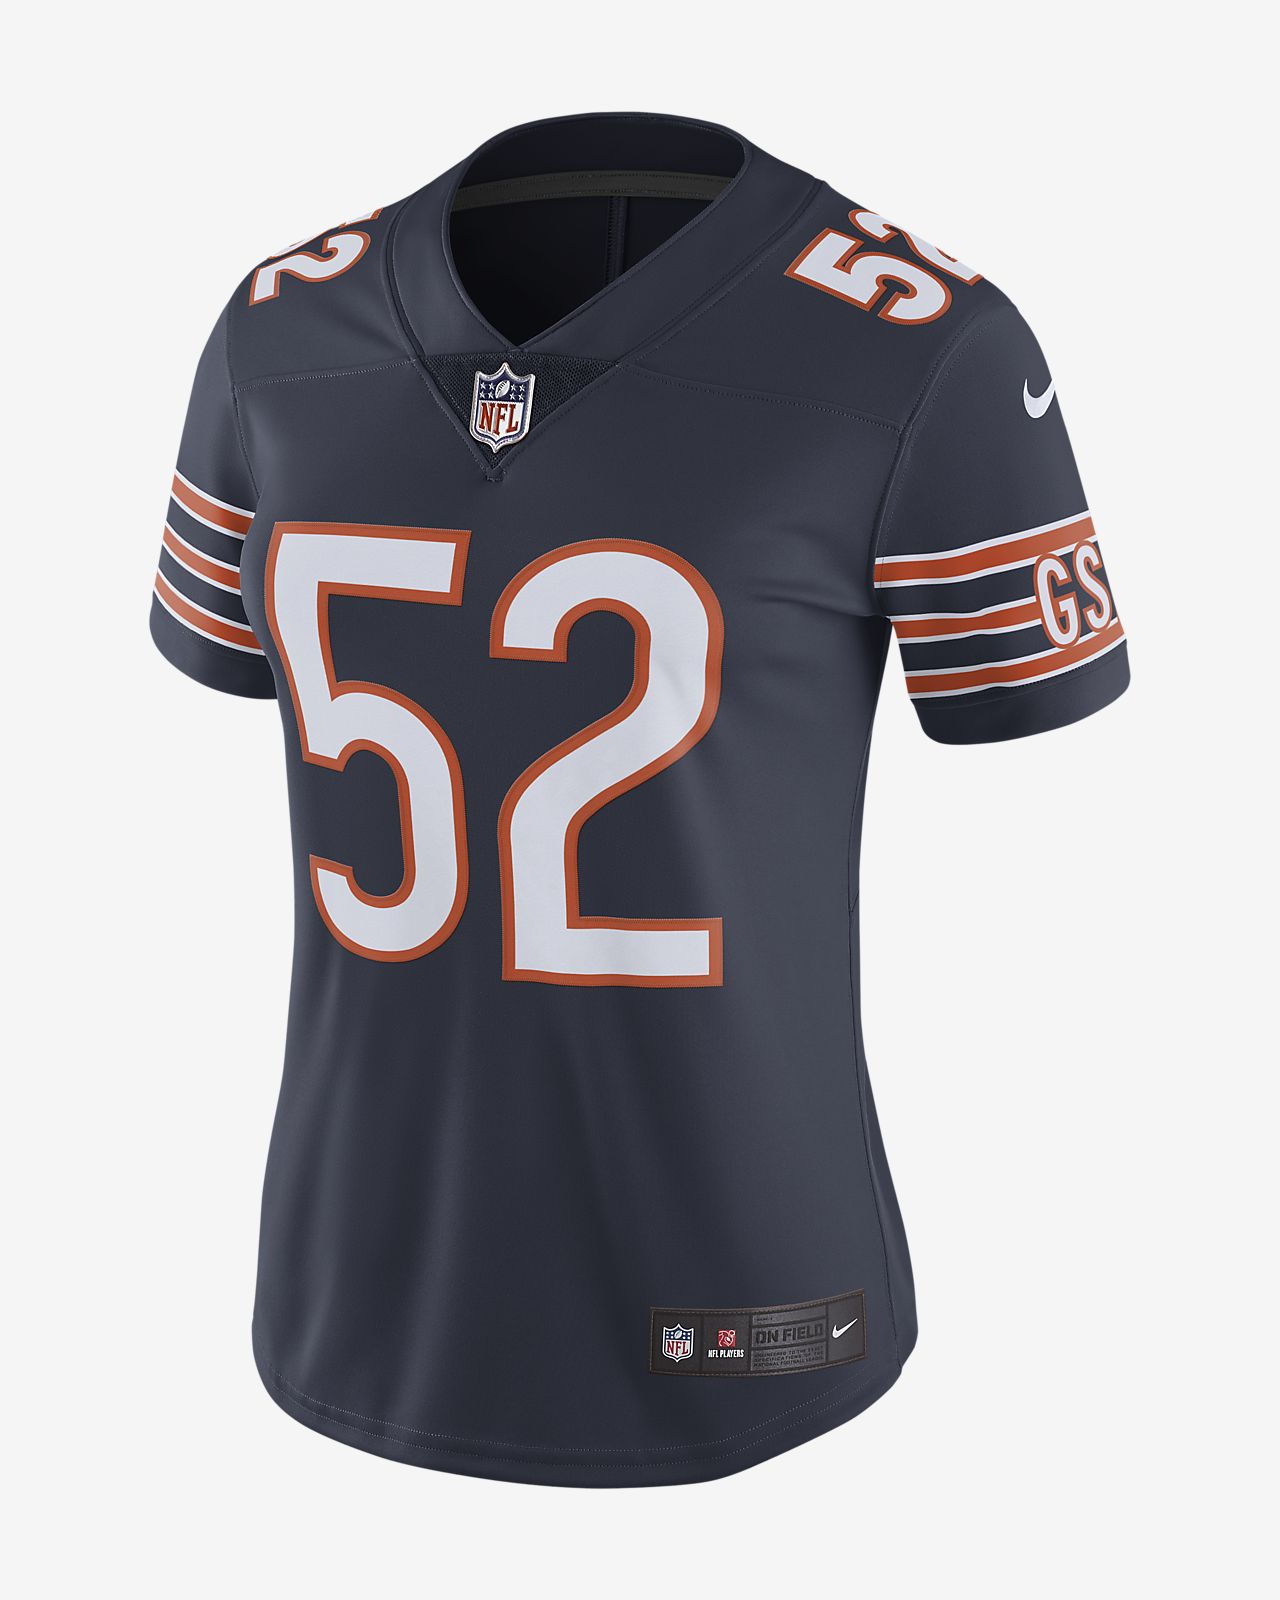 new style 87300 9bf76 NFL Chicago Bears Limited (Khalil Mack) Women's Football Jersey